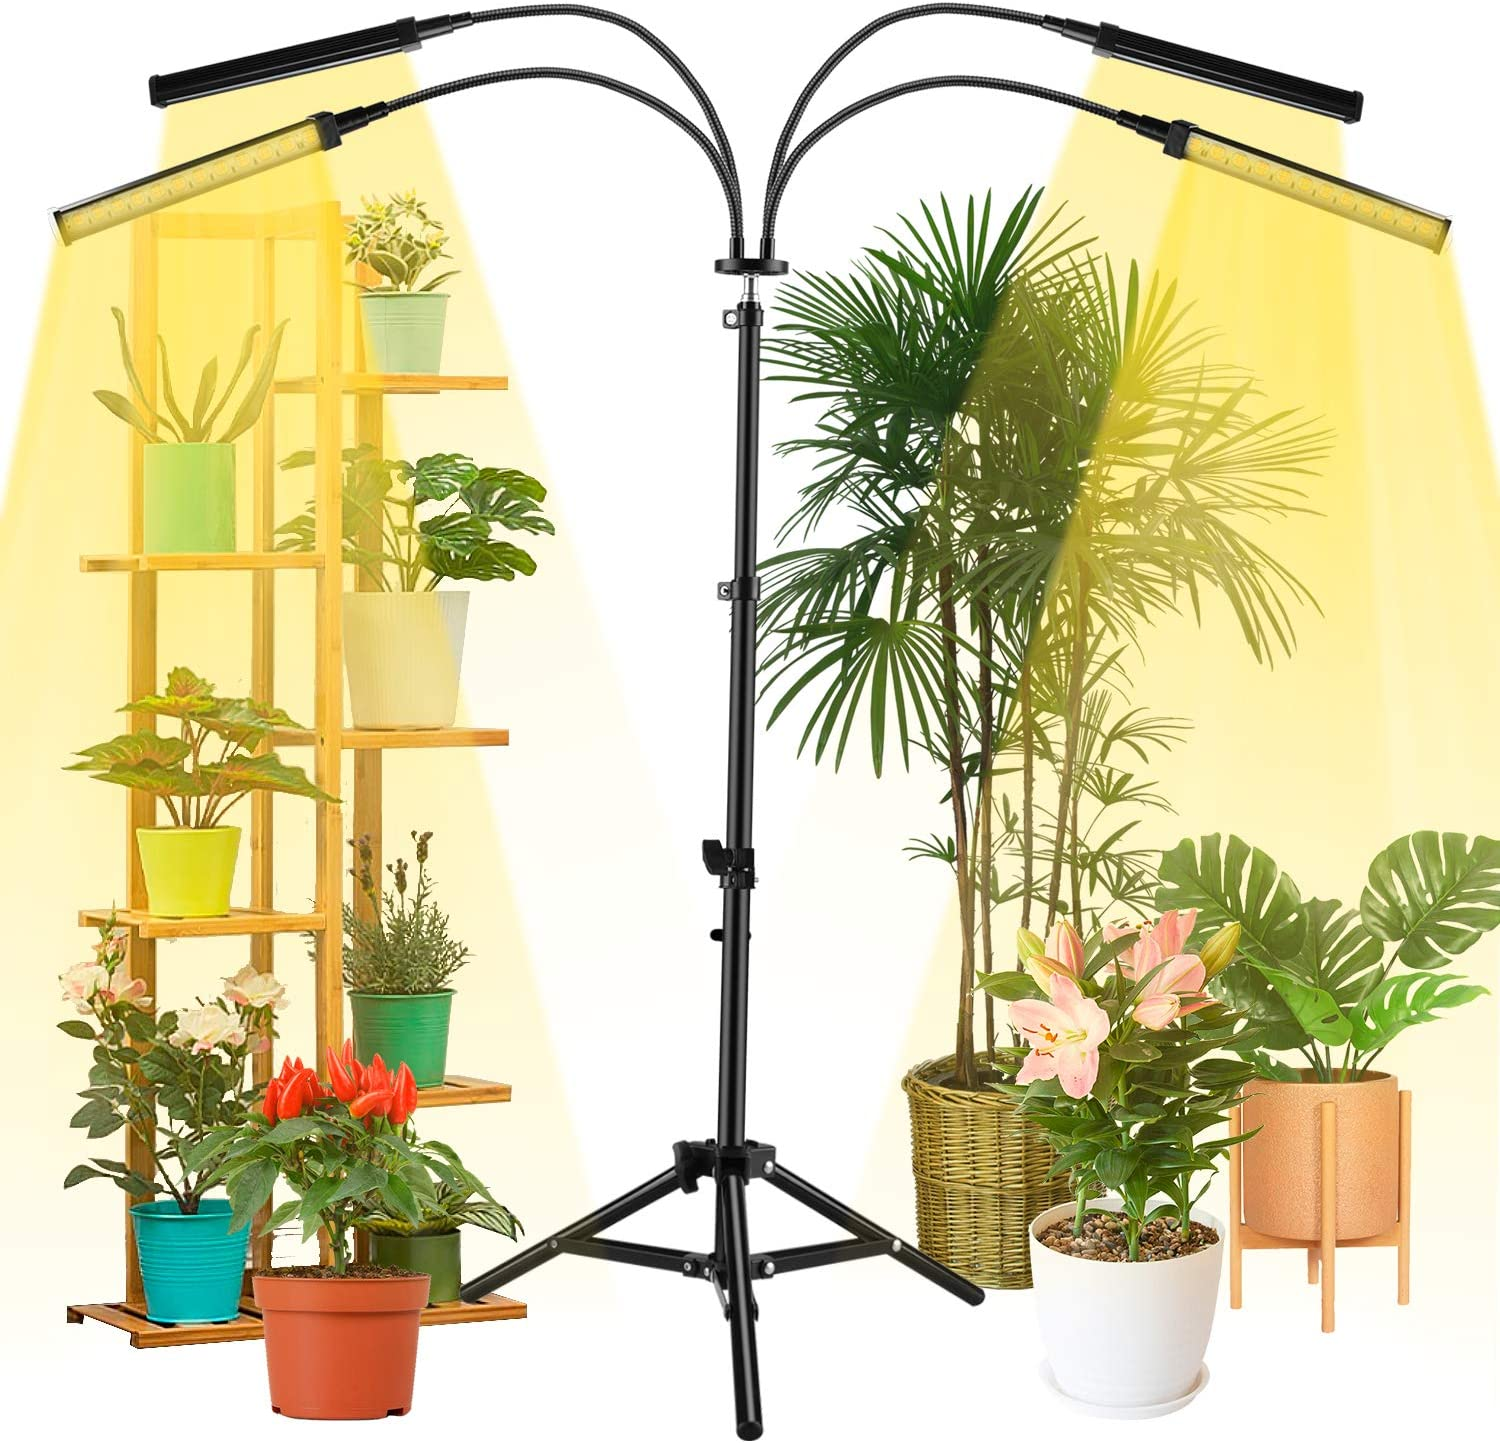 Grow Lights for Indoor Plants, NaCot LED Floor Full Spectrum Plant Light with Stand and Auto ON/Off Timer, Plant Grow Lamp for Seed Starting Plants Growth with Adjustable Gooseneck & Tripod